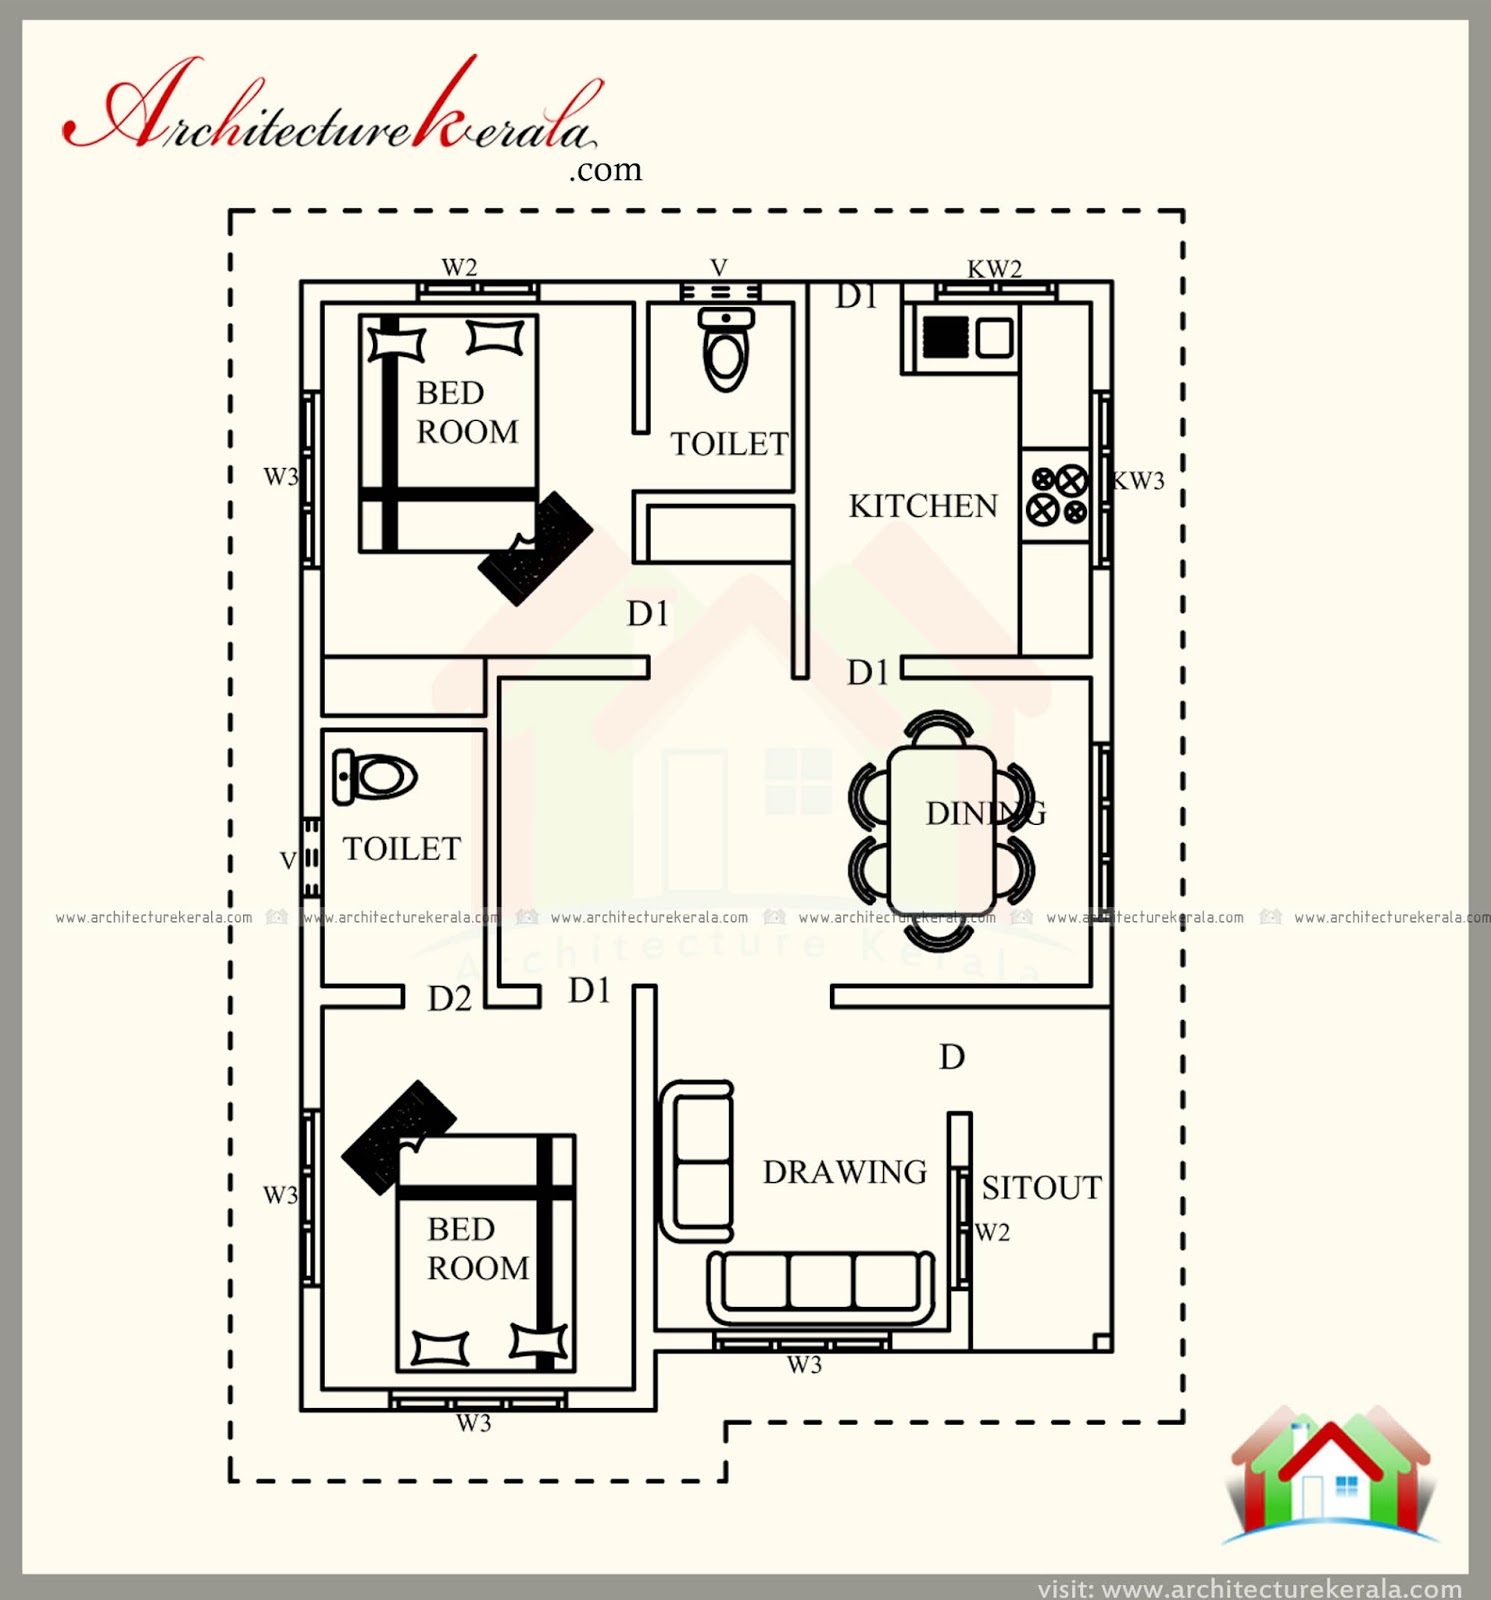 700 Square Feet Kerala Style House Plan Architecture Kerala: 700 square feet home plans